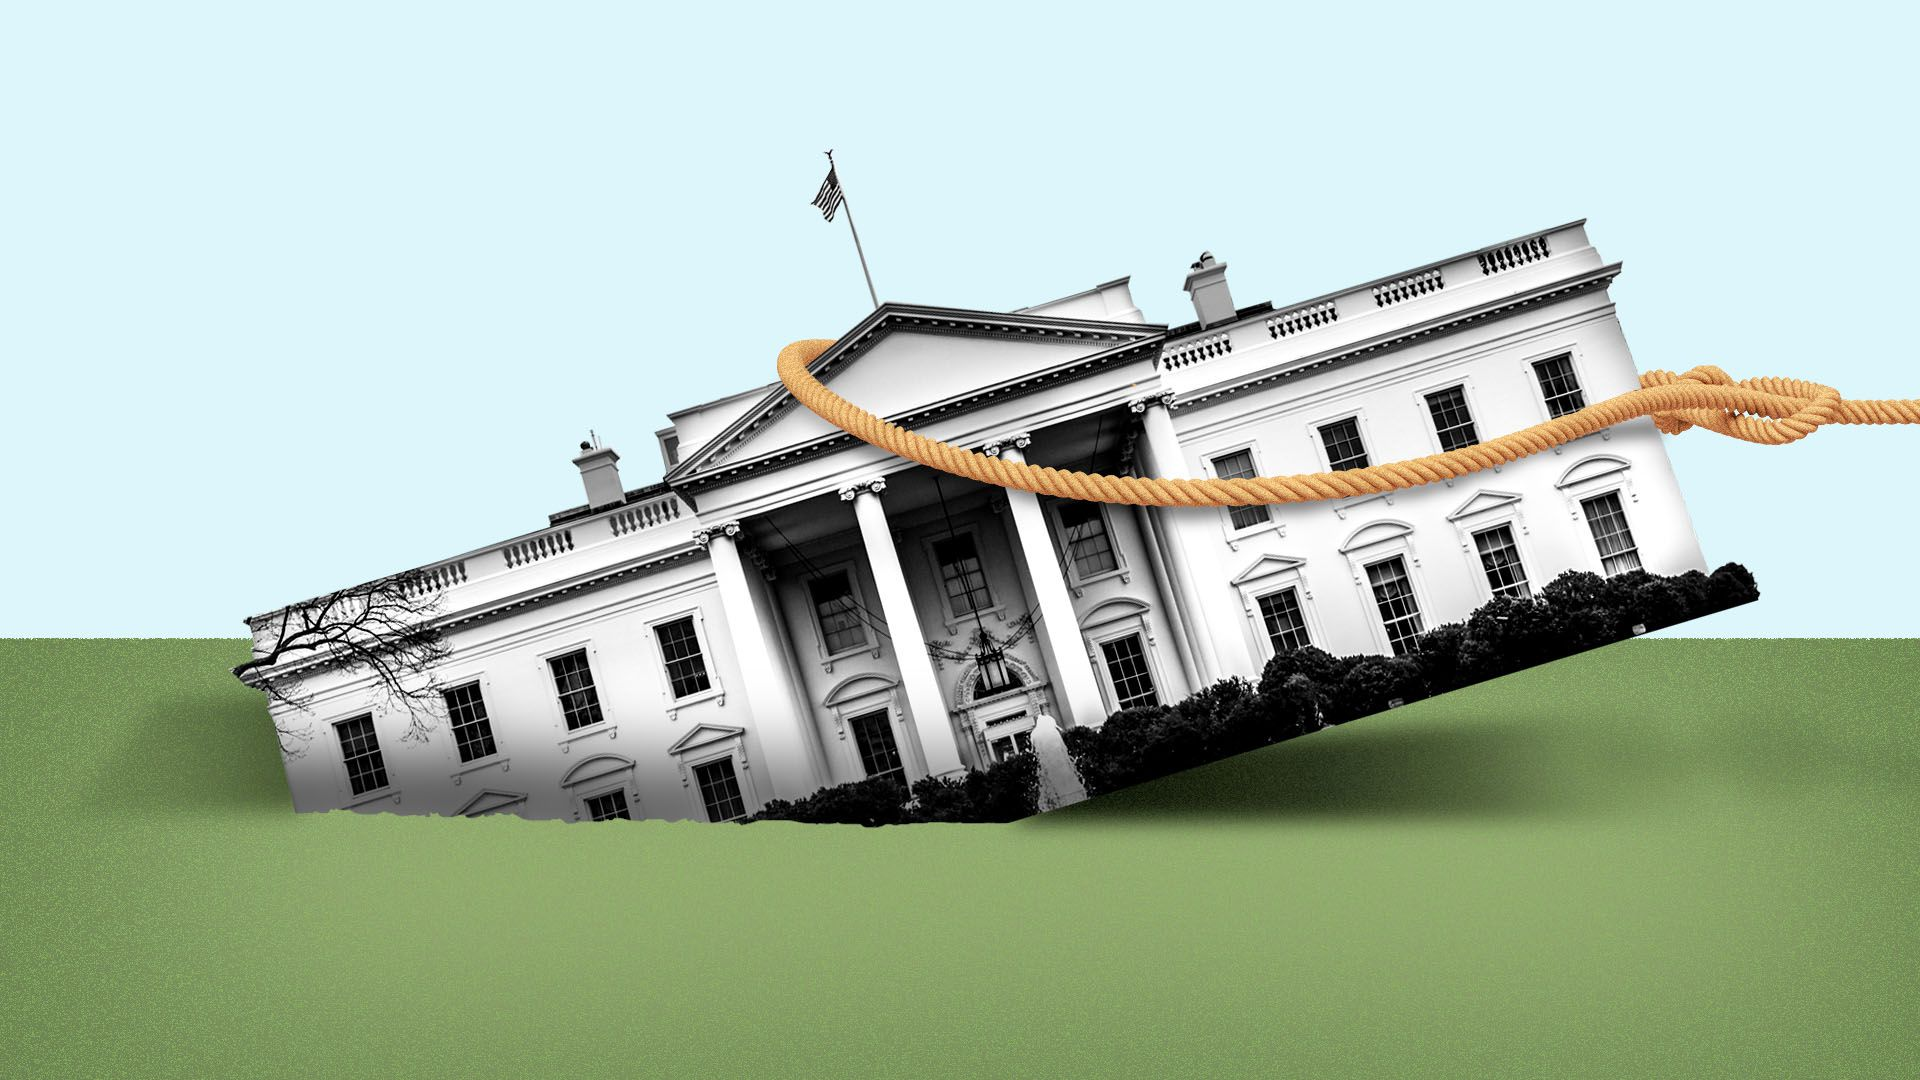 Illustration of the White House sinking into the ground, with a rope trying to pull it out